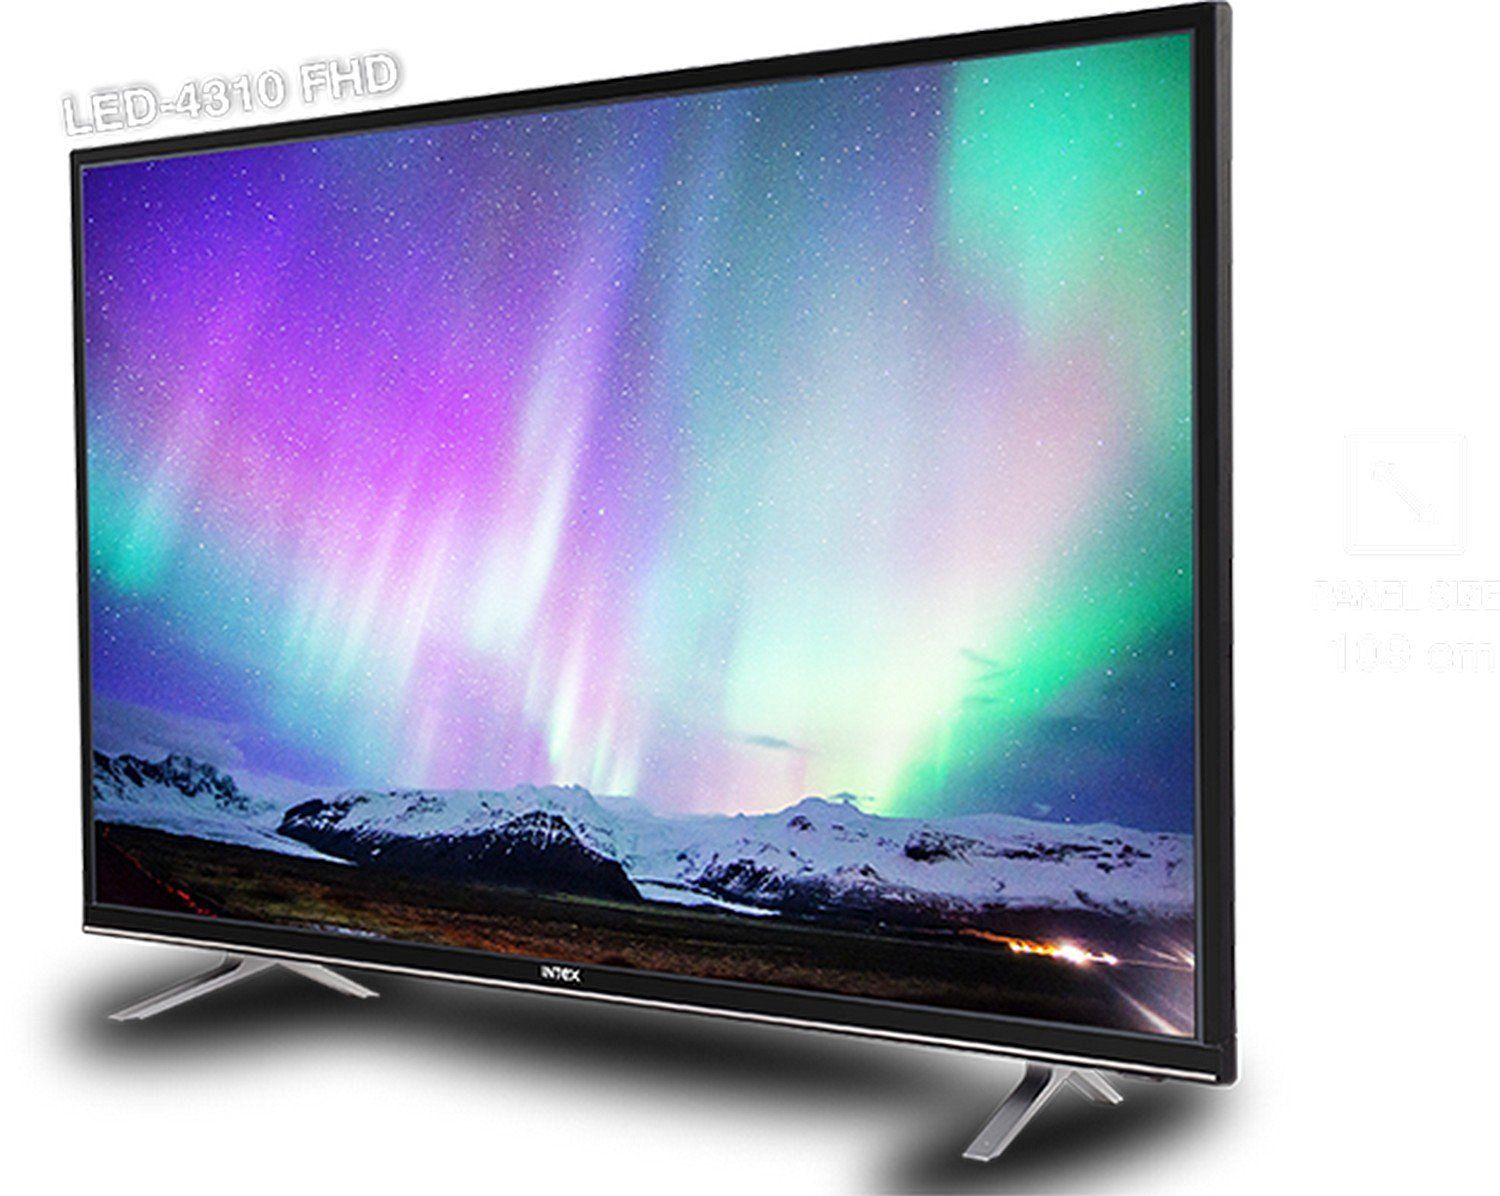 Intex 43 Inches 4310 Full Hd Led Tv Online At Low Price In India